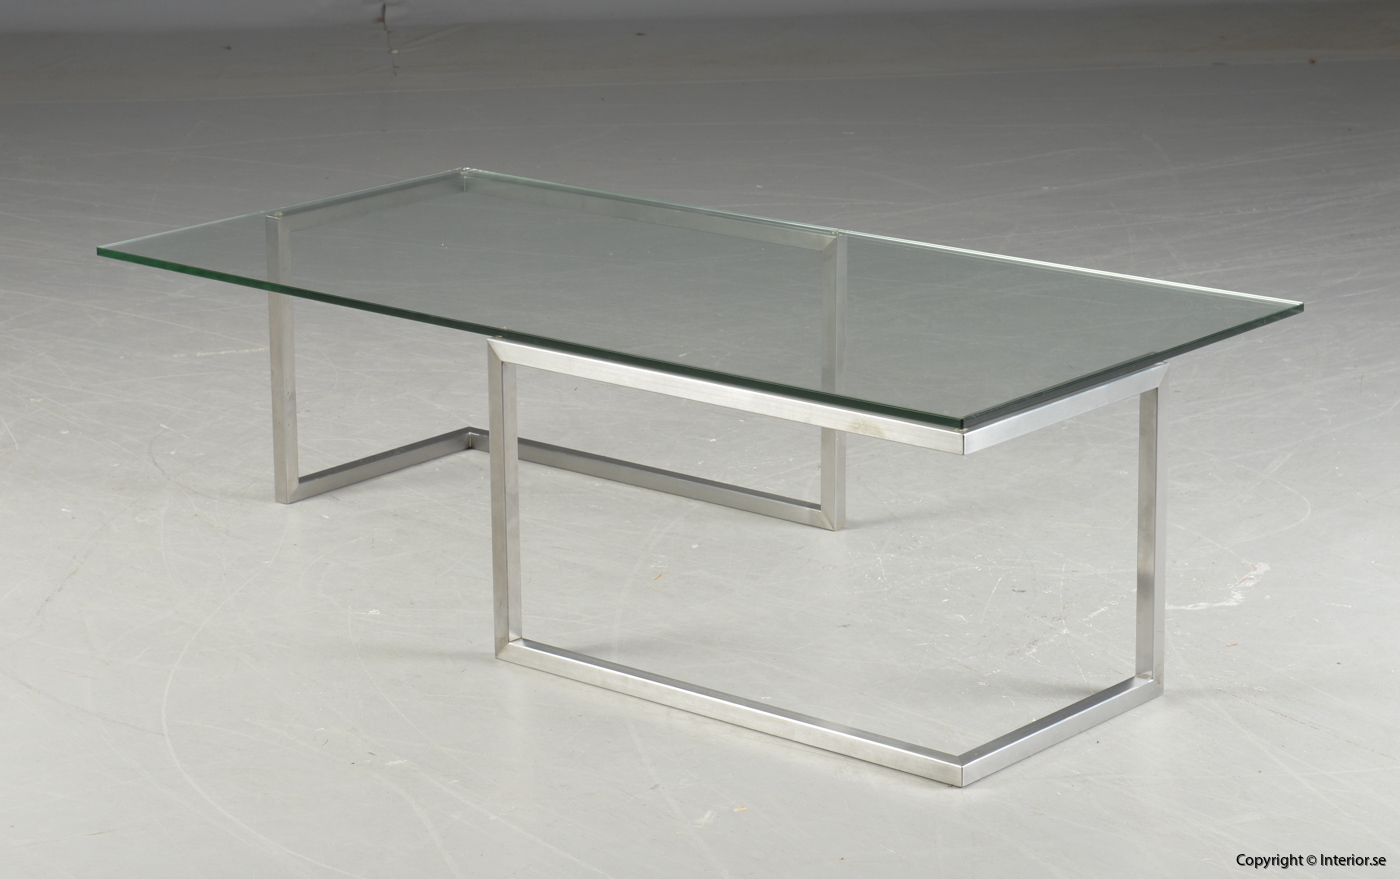 Soffbord, Heine Design - Twist 1 Coffee Table 5